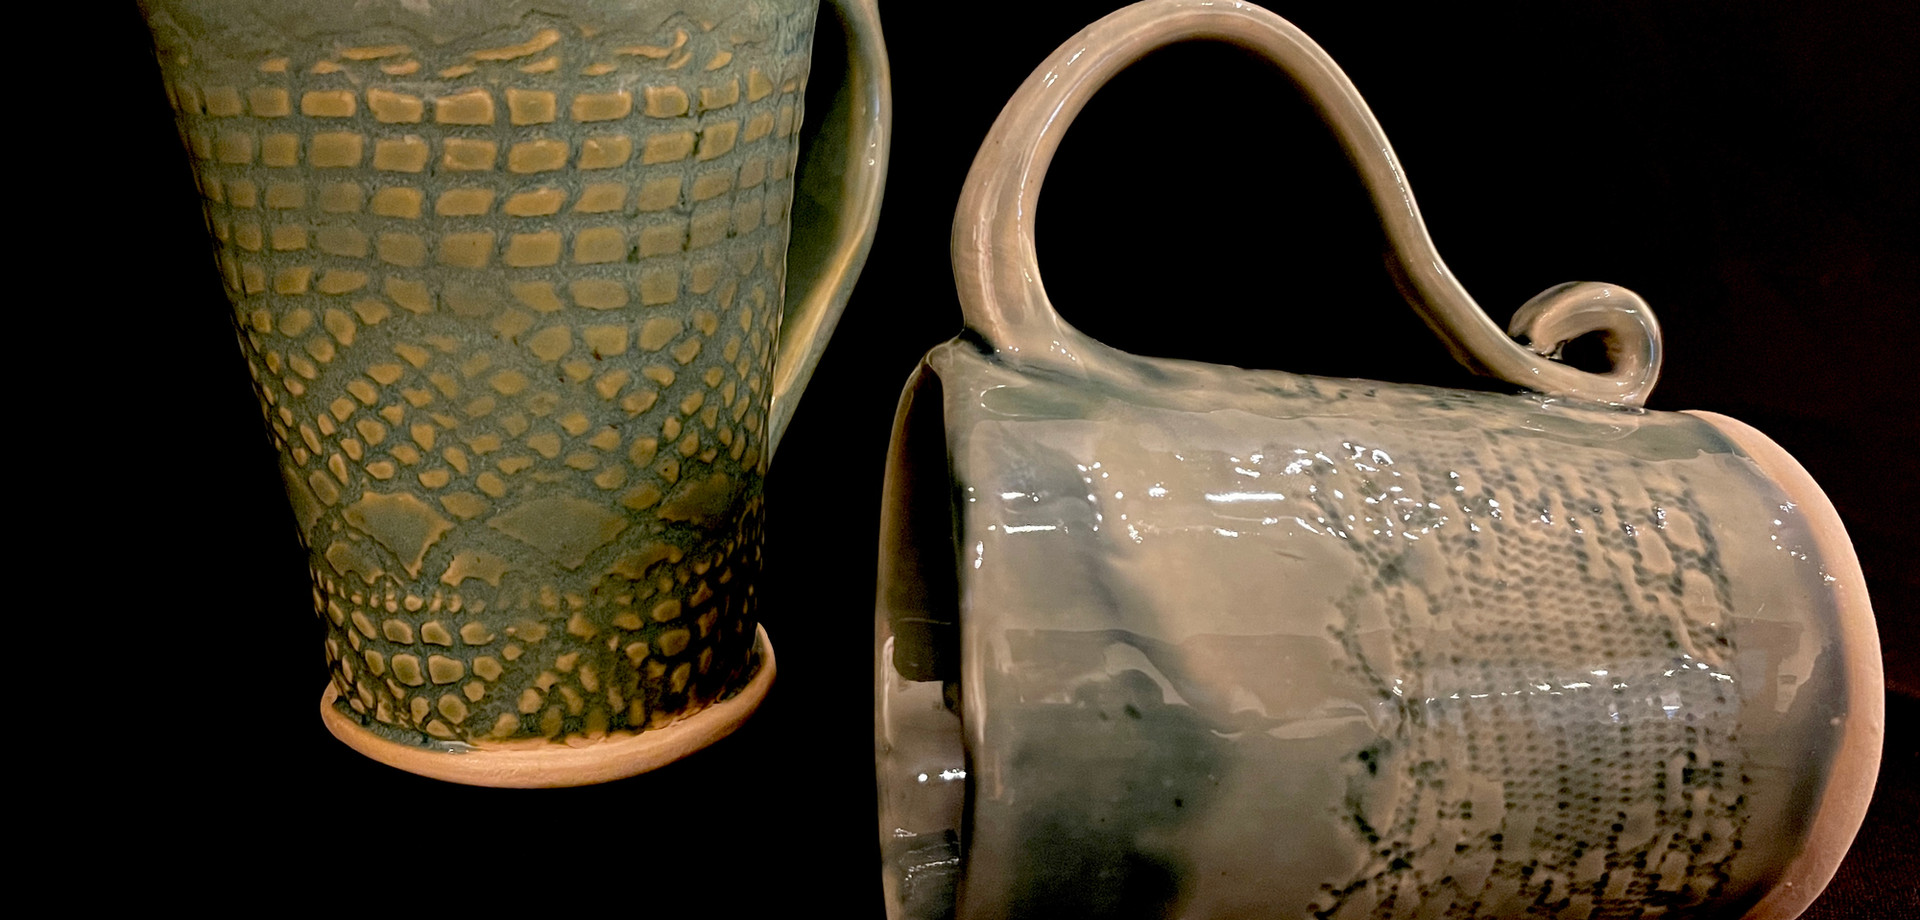 Handmade Pottery by Holly Heaslip